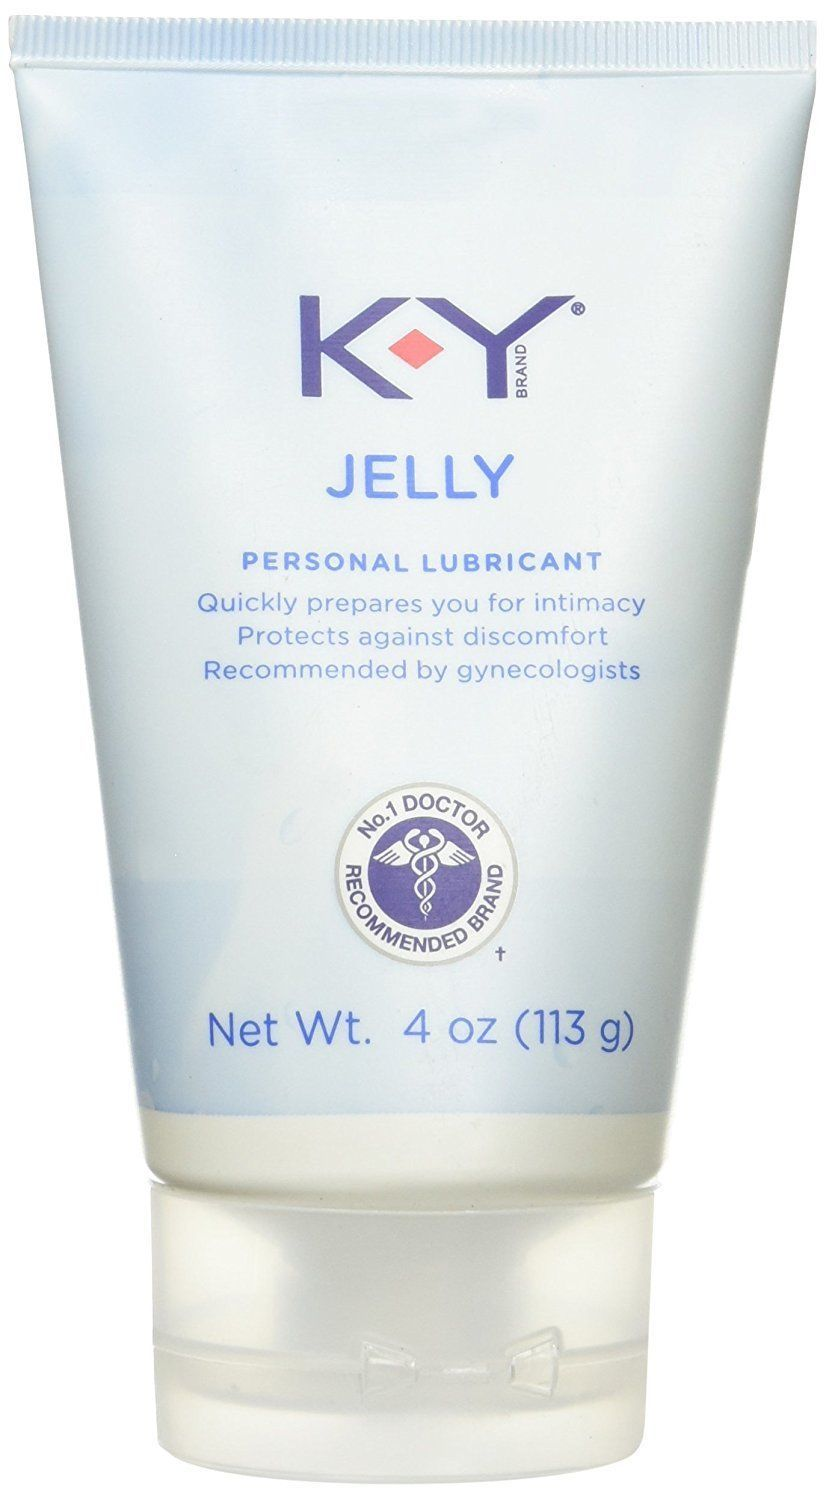 K-y jelly for vaginal dryness